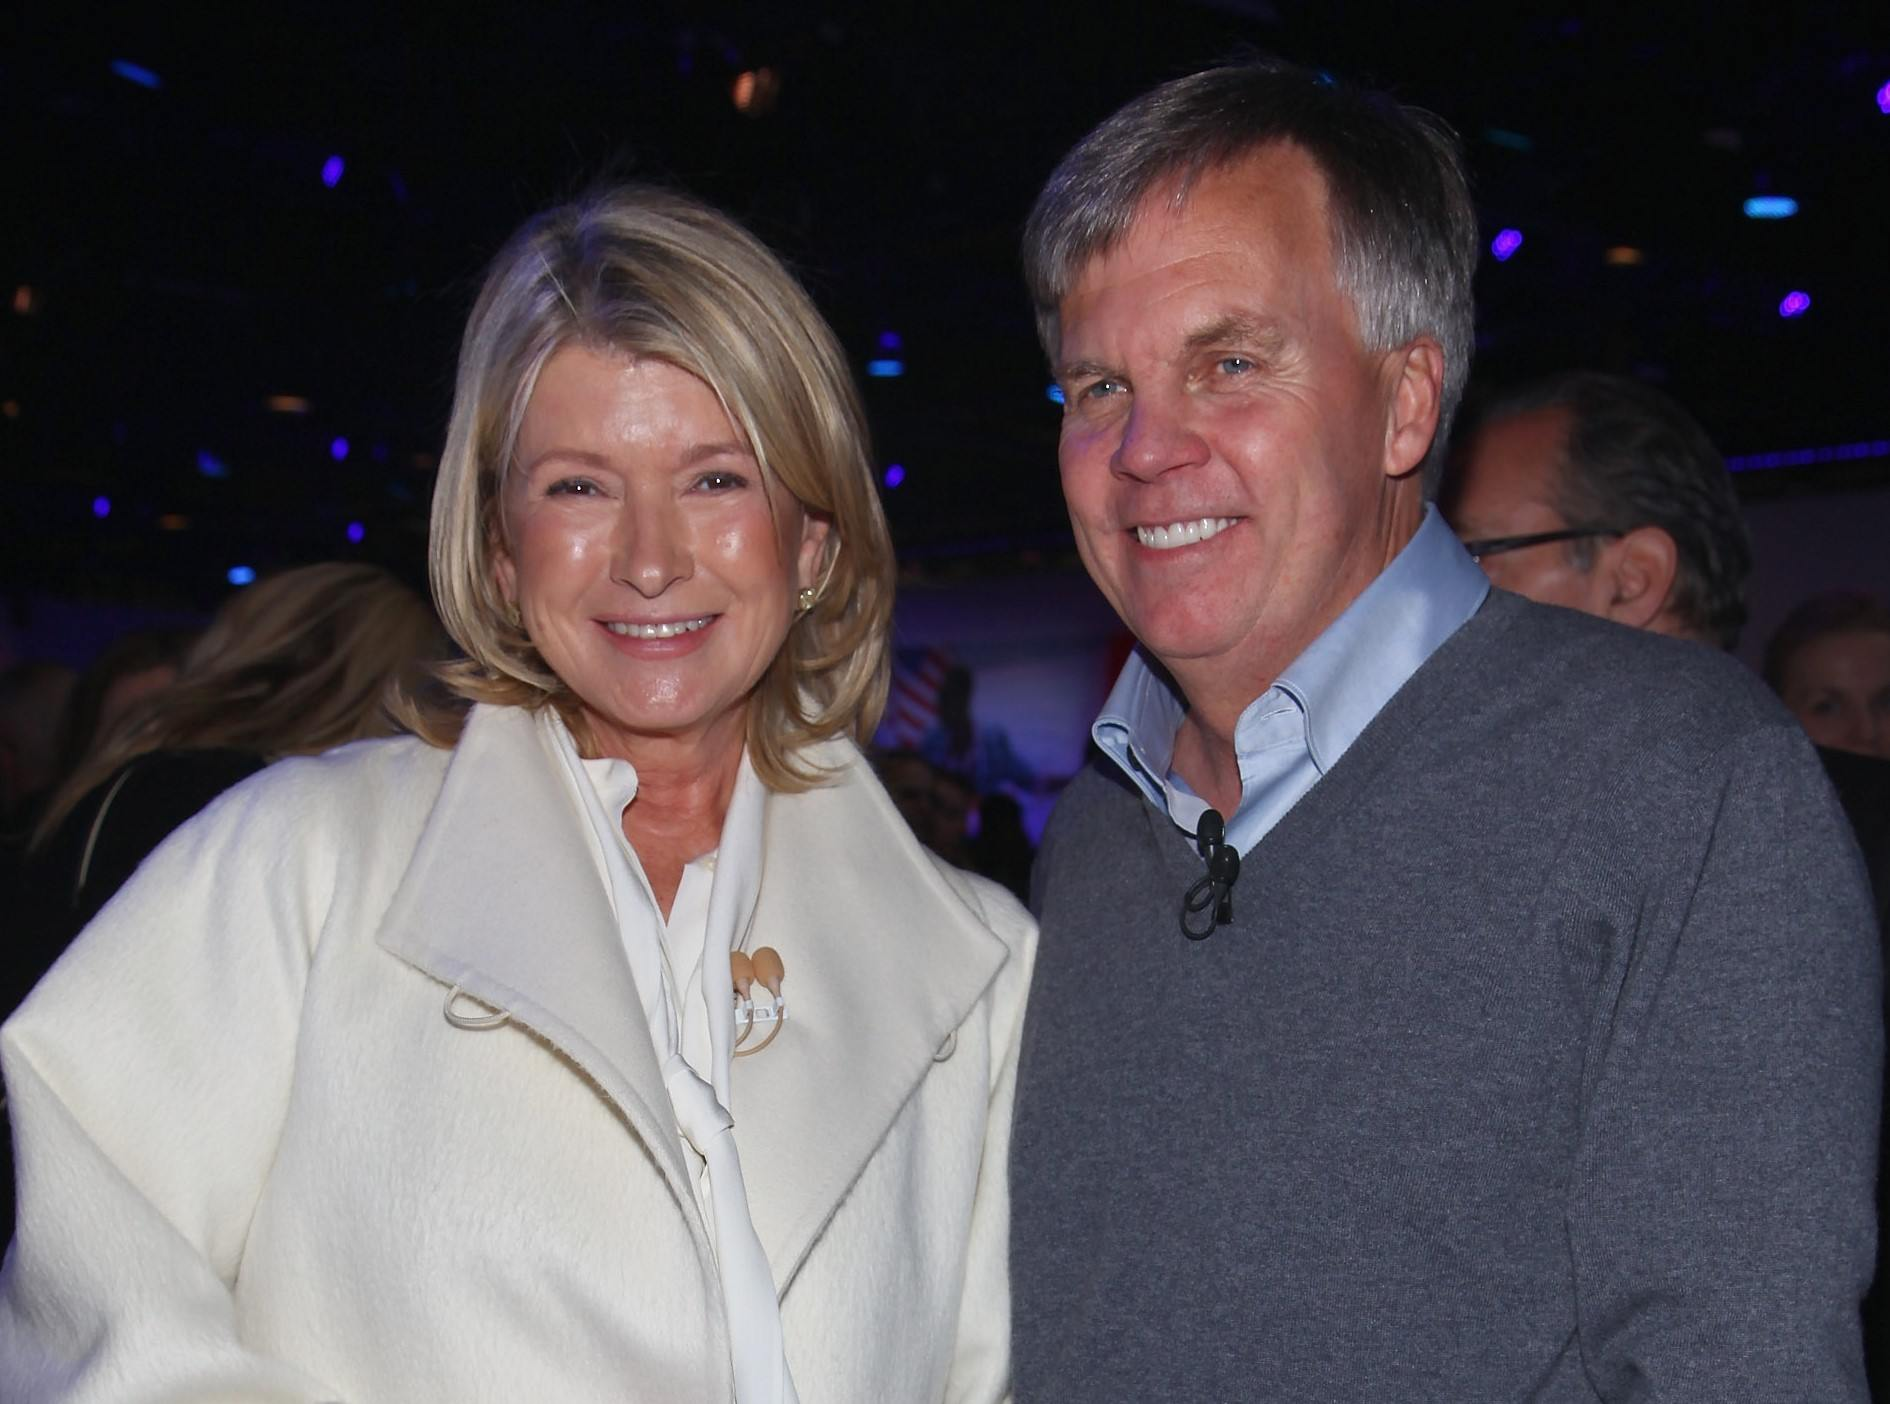 Martha Stewart and Ron Johnson at JcPenney Launch event